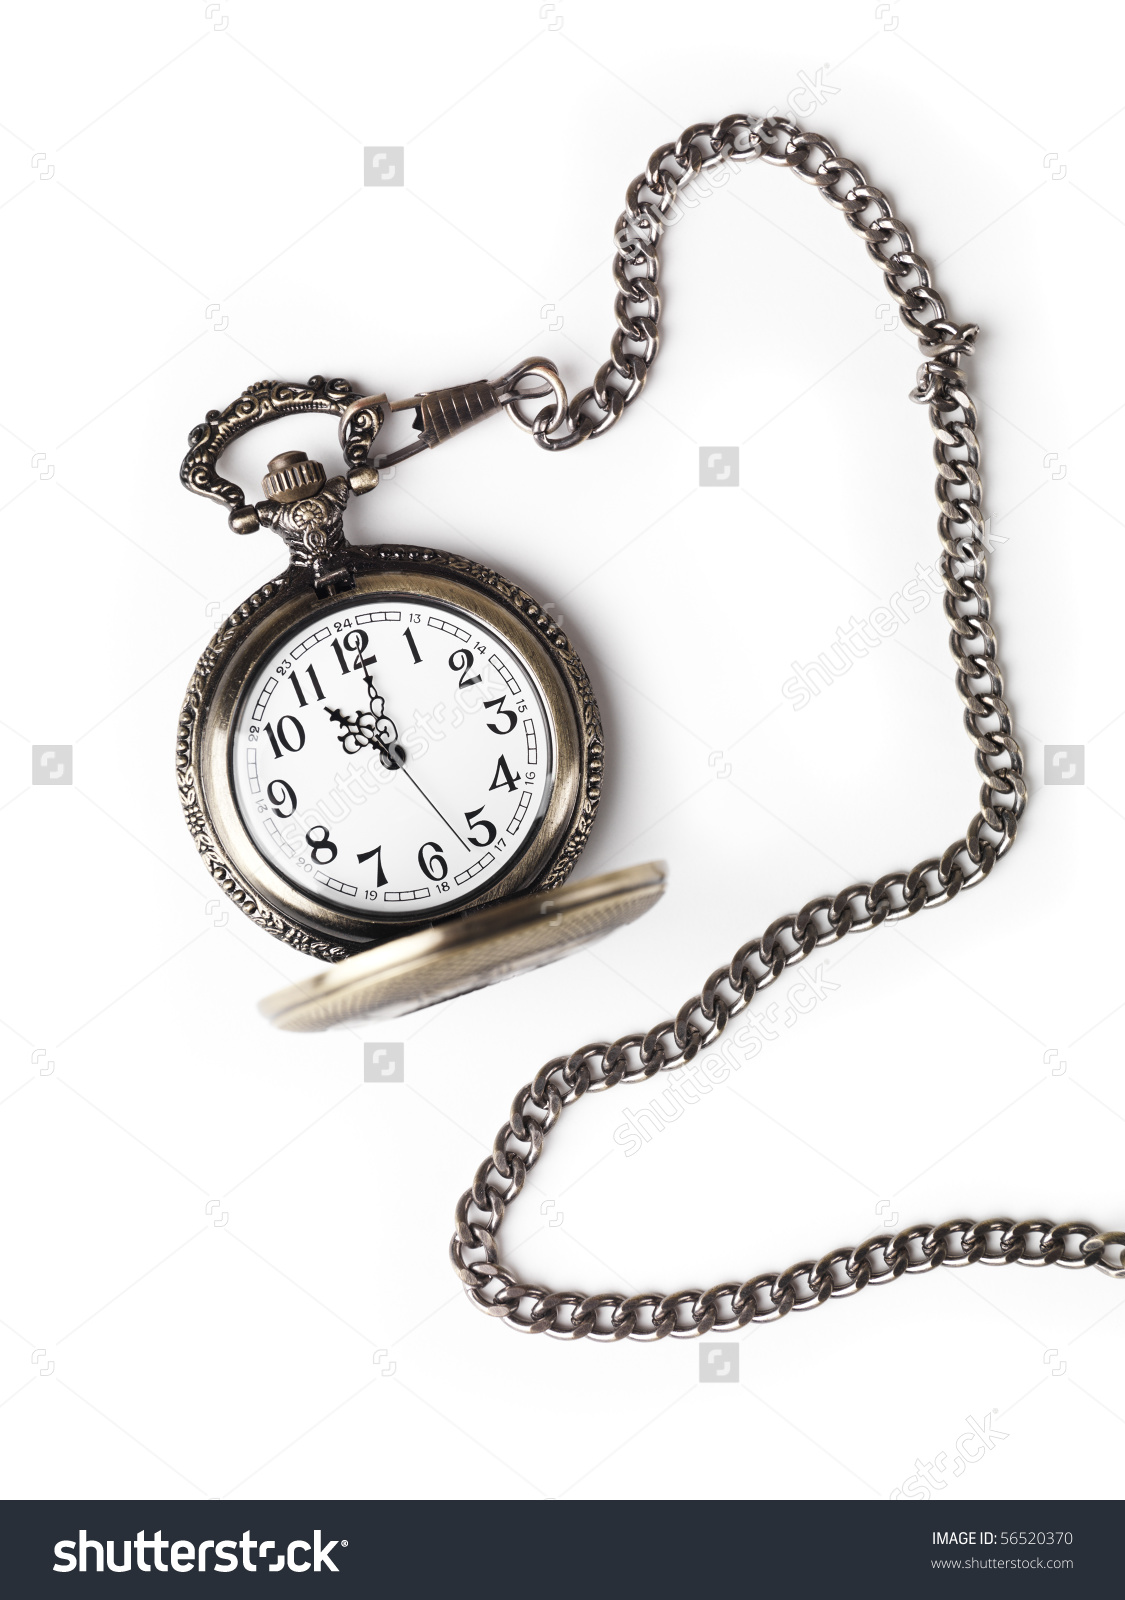 Antique Pocket Watch On Chain Open Stock Photo 56520370.